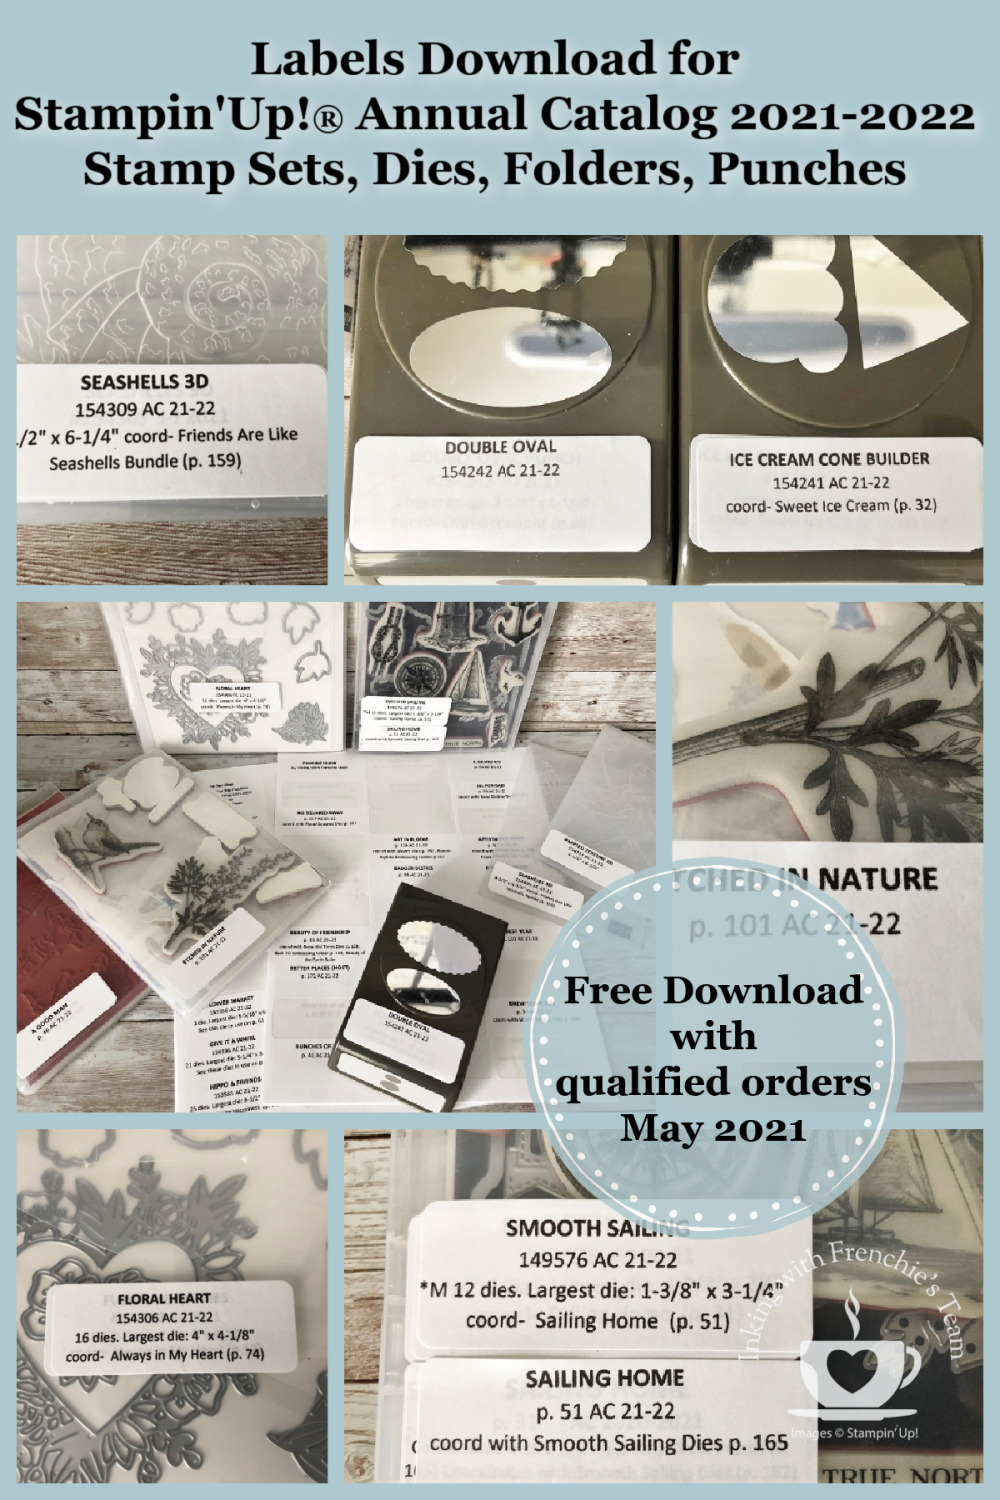 Labels To Organize Stampin\'Up! Products 2021-2022 Annual Catalog.